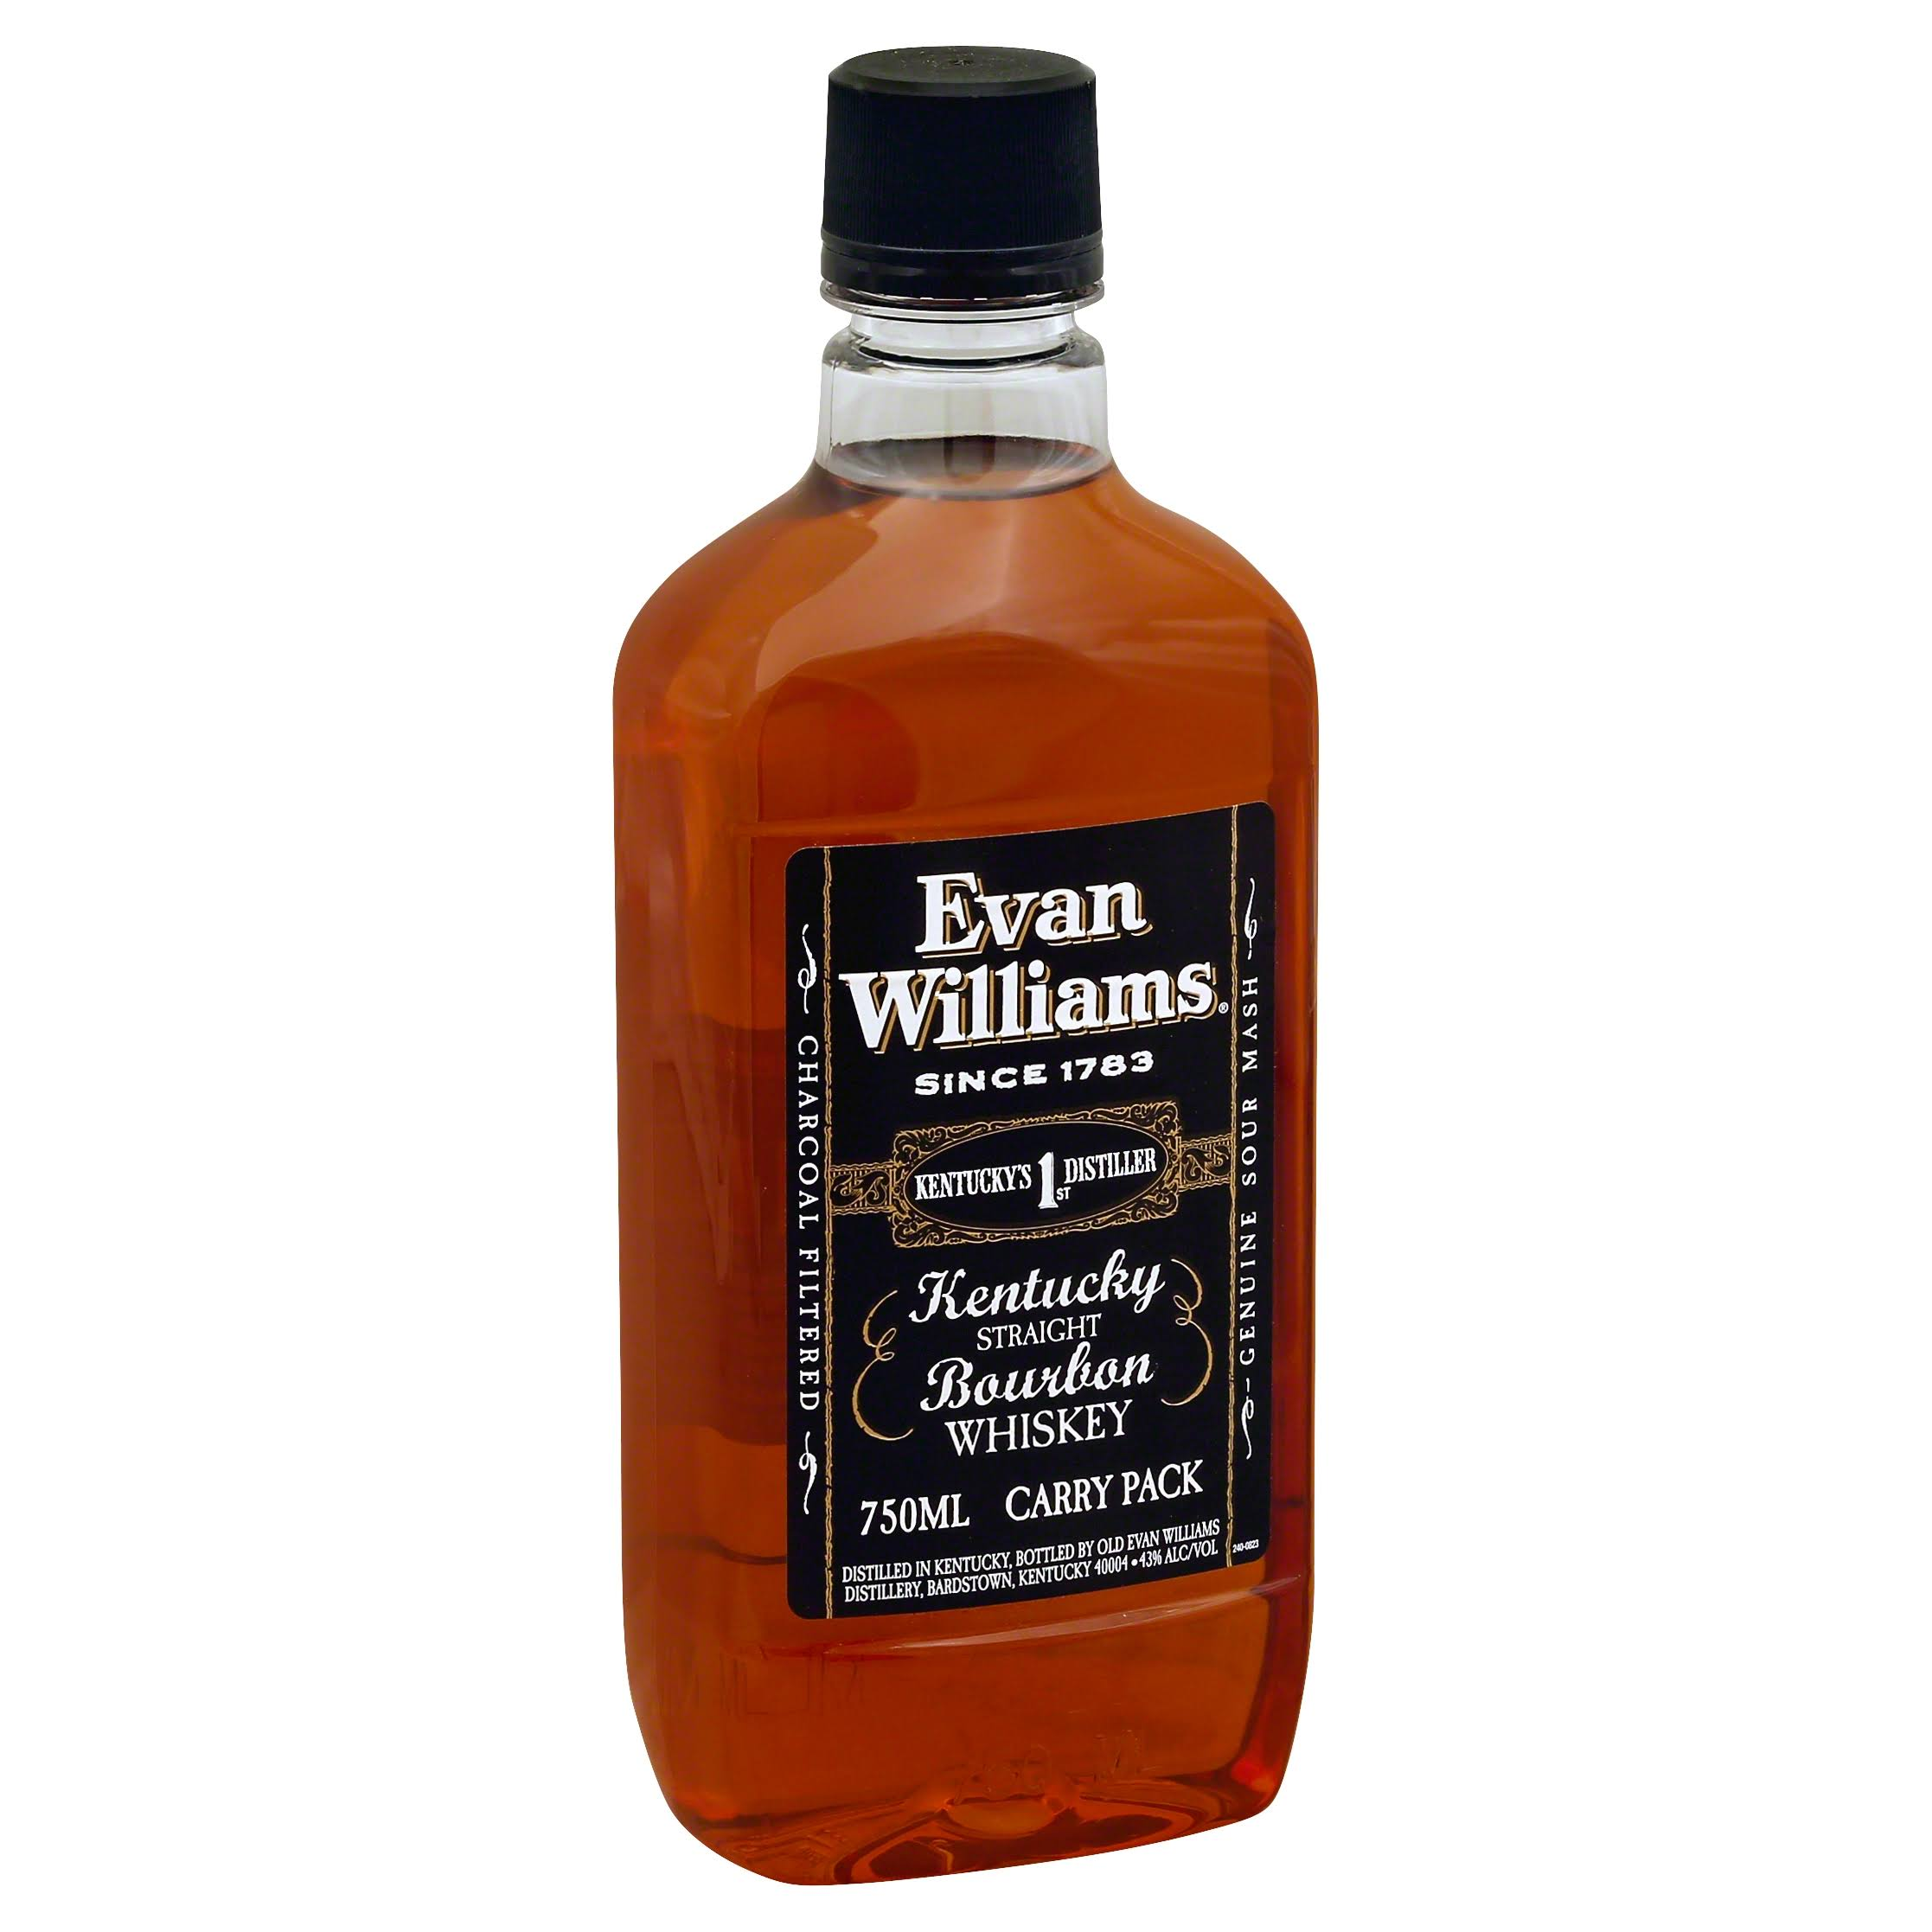 Evan Williams Whiskey, Kentucky Straight Bourbon, Carry Pack - 750 ml